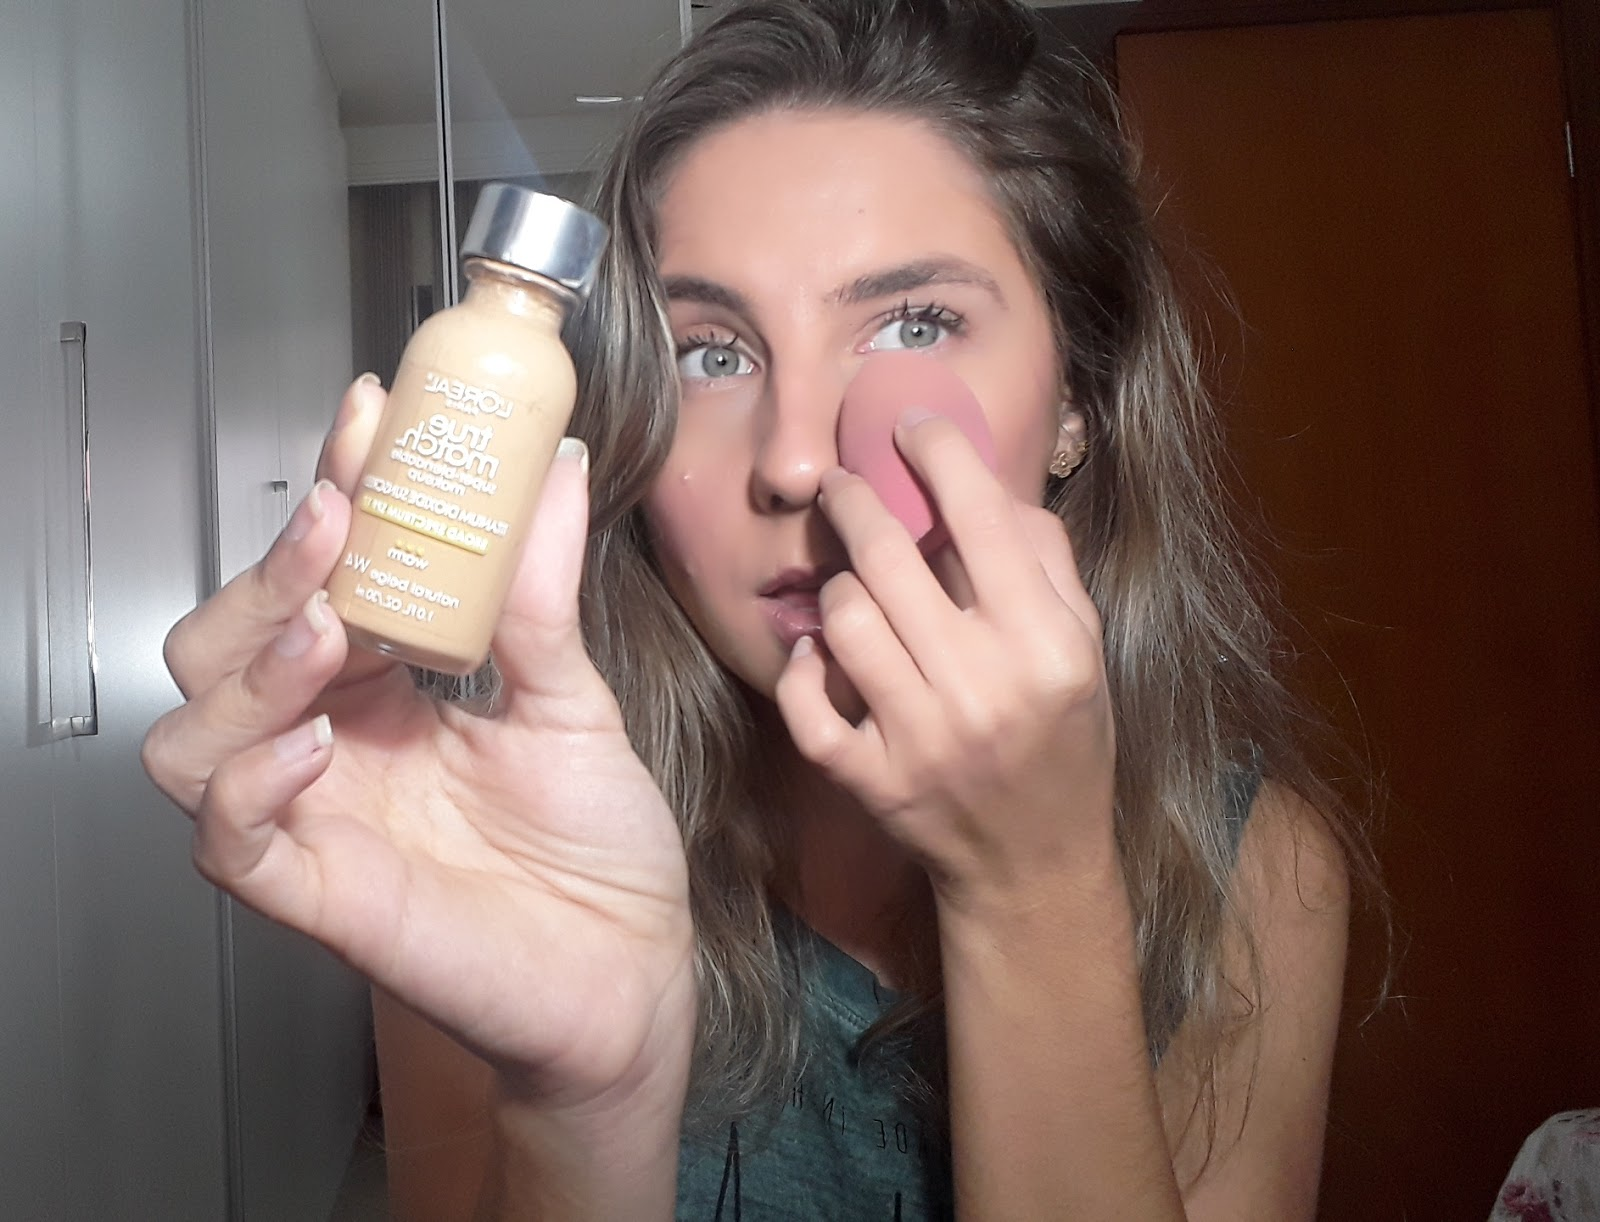 Base True Match L'oreal!